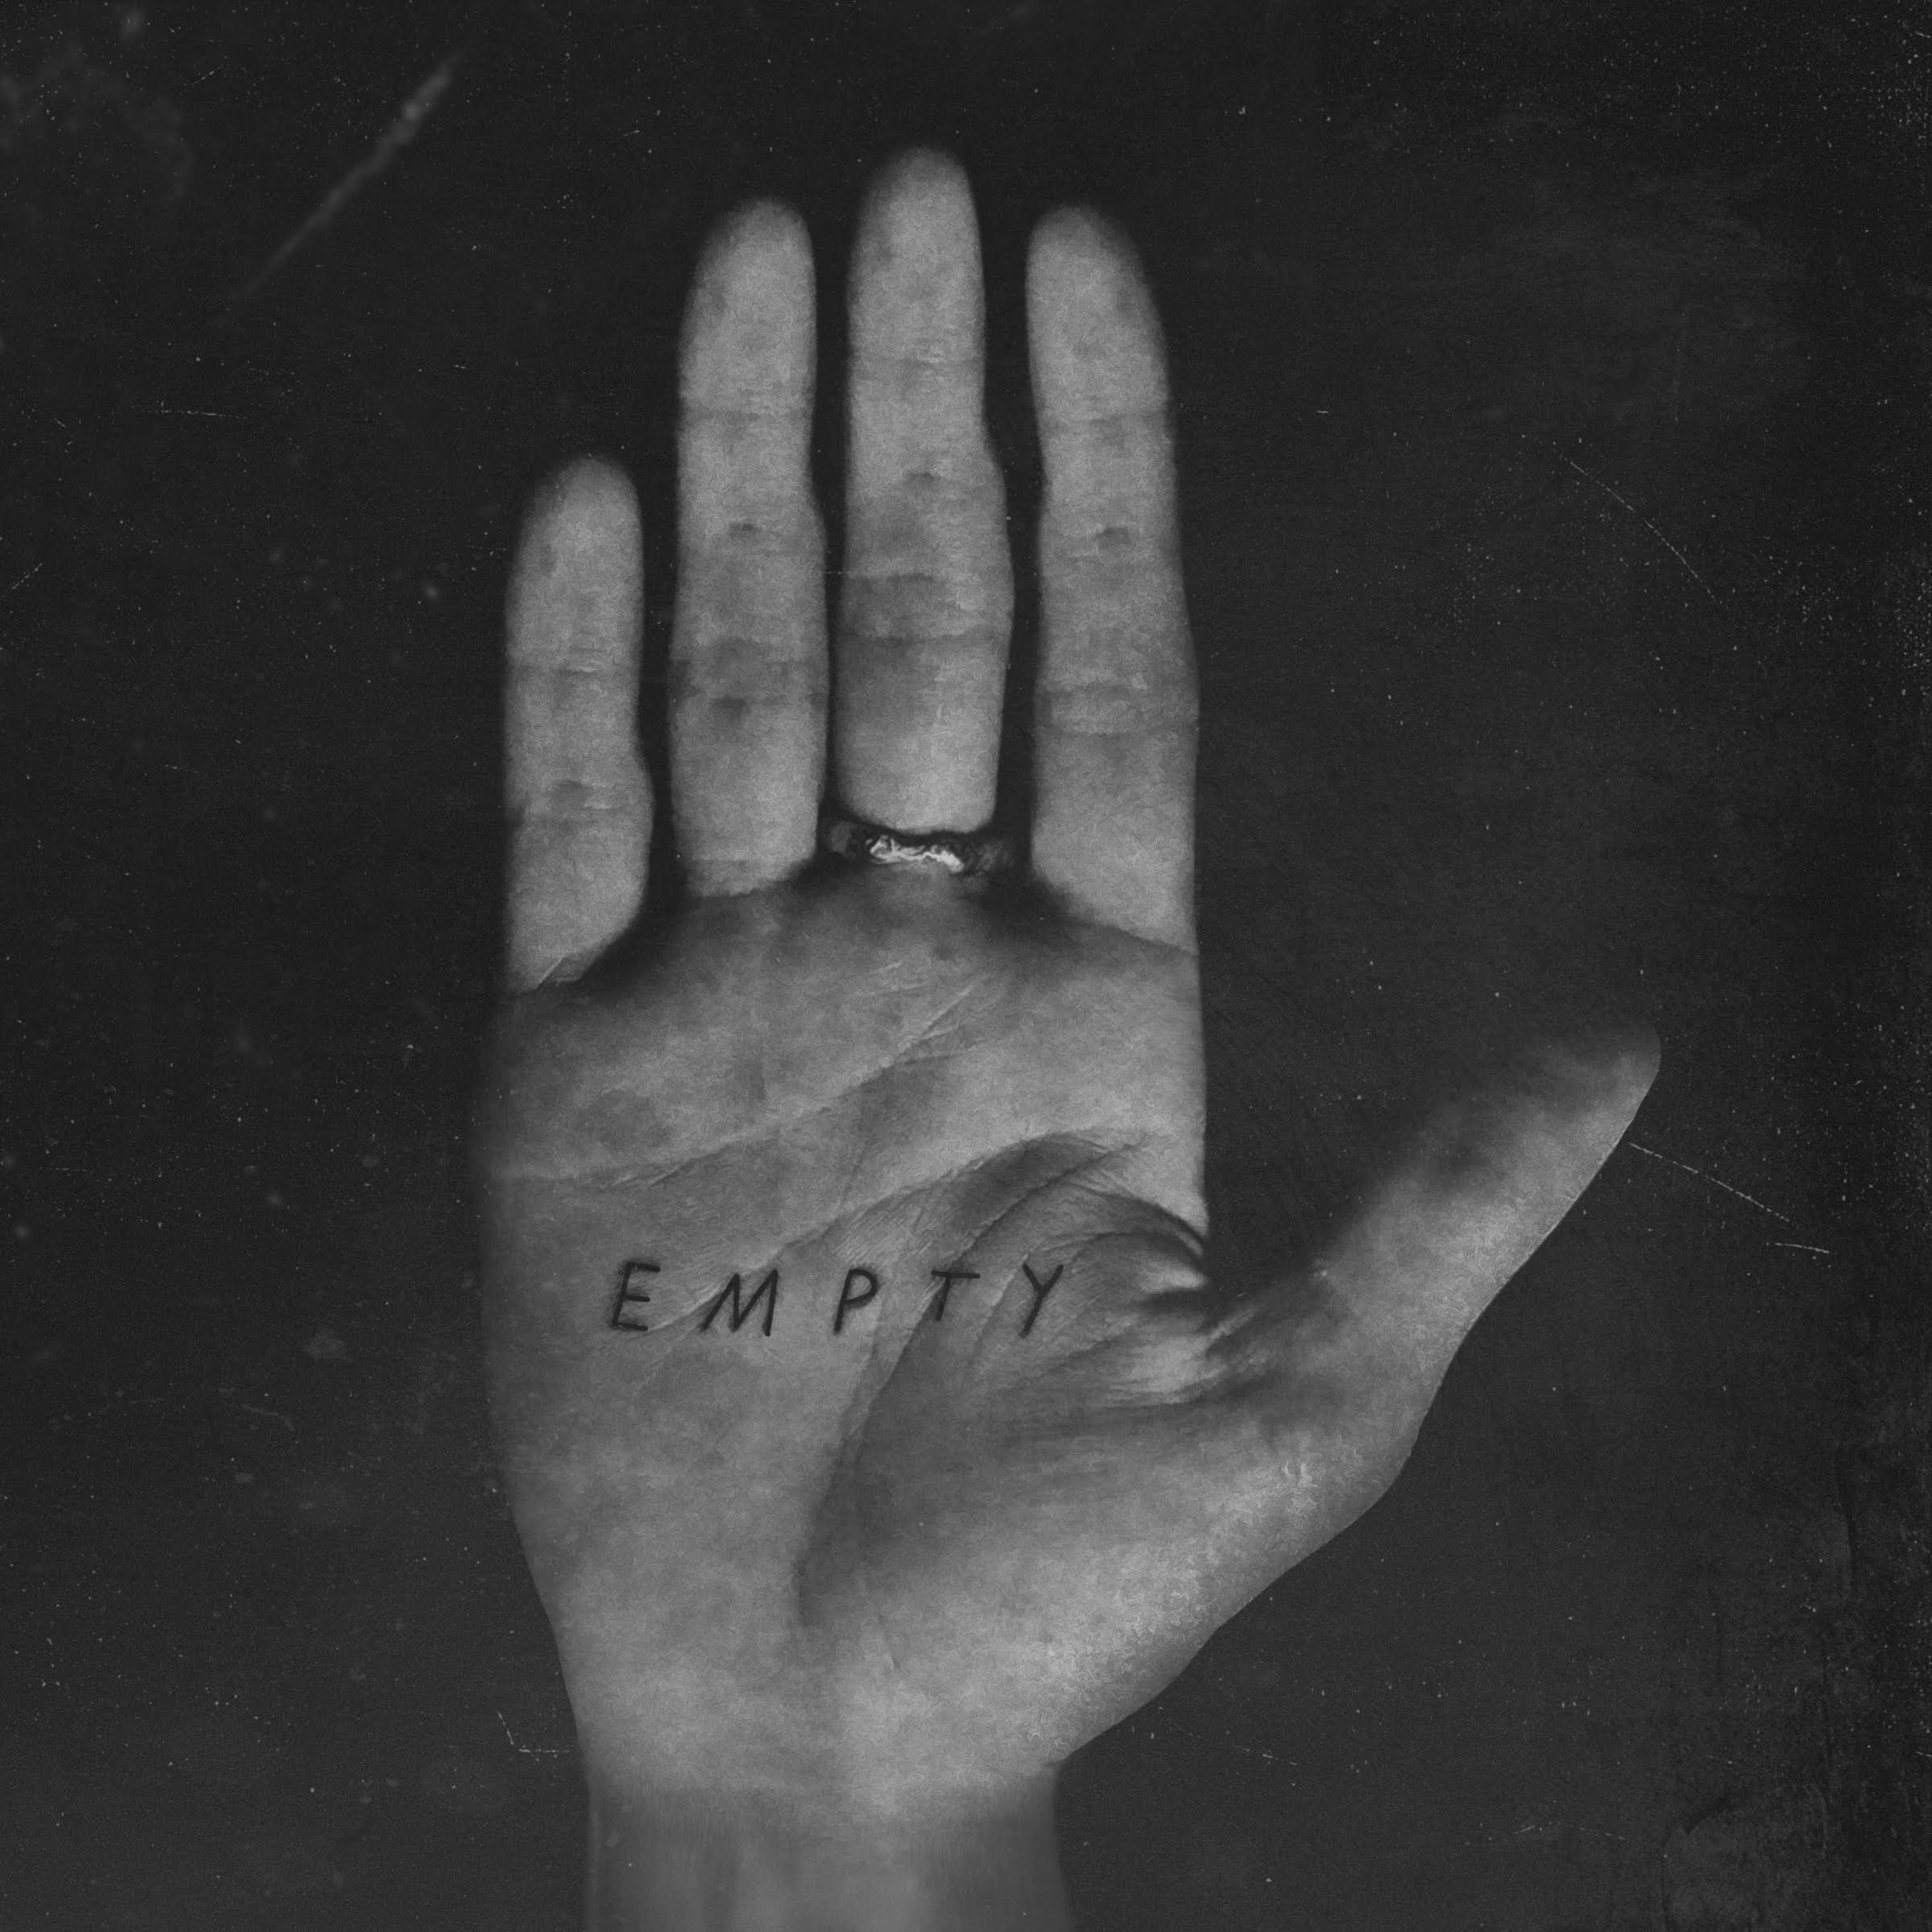 Empty - The Healing Process [EP] (2018)